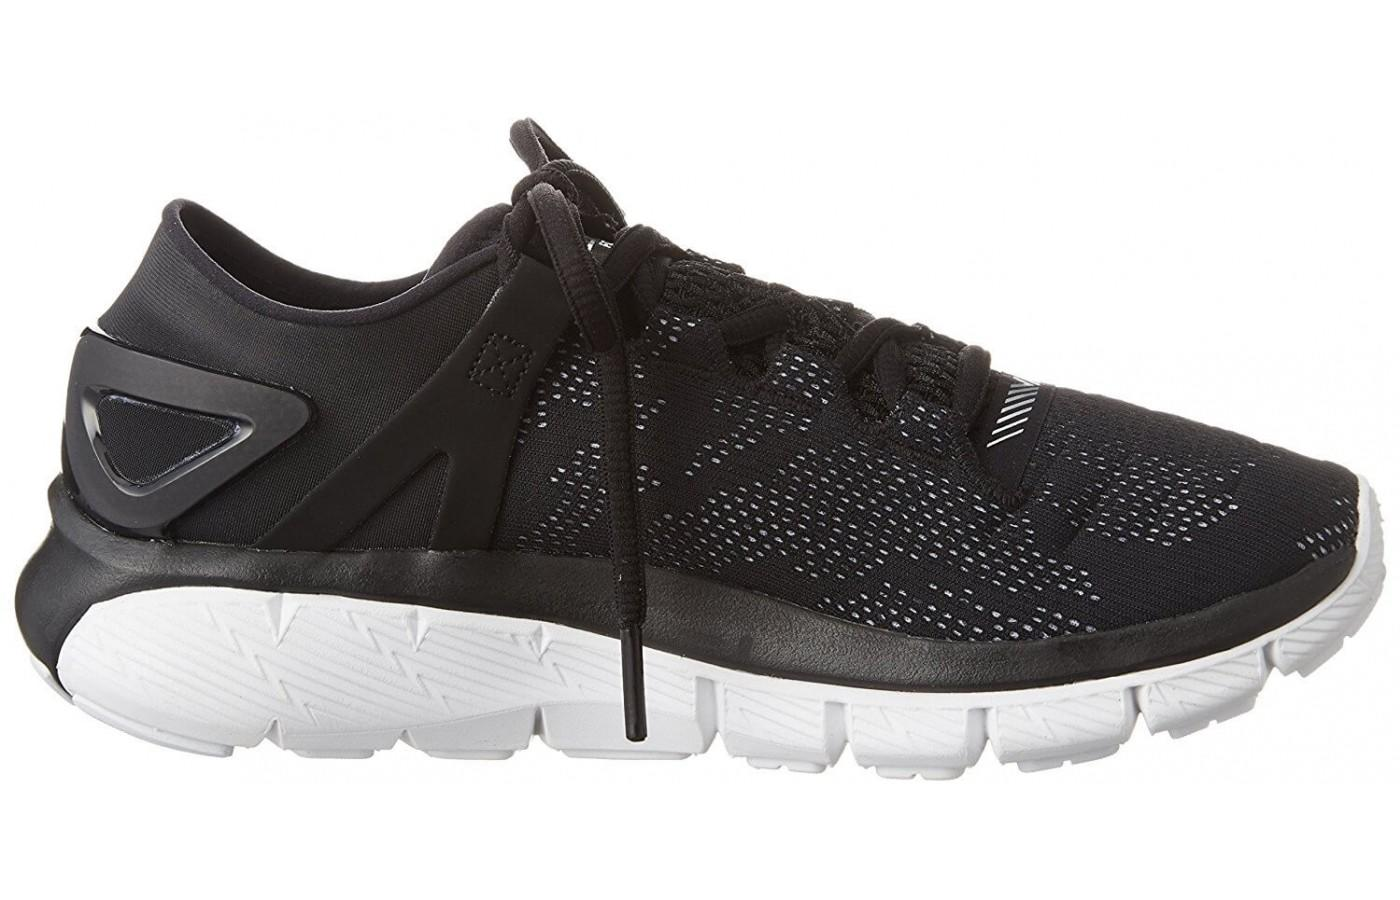 the Under Armour SpeedForm Fortis Vent from the right